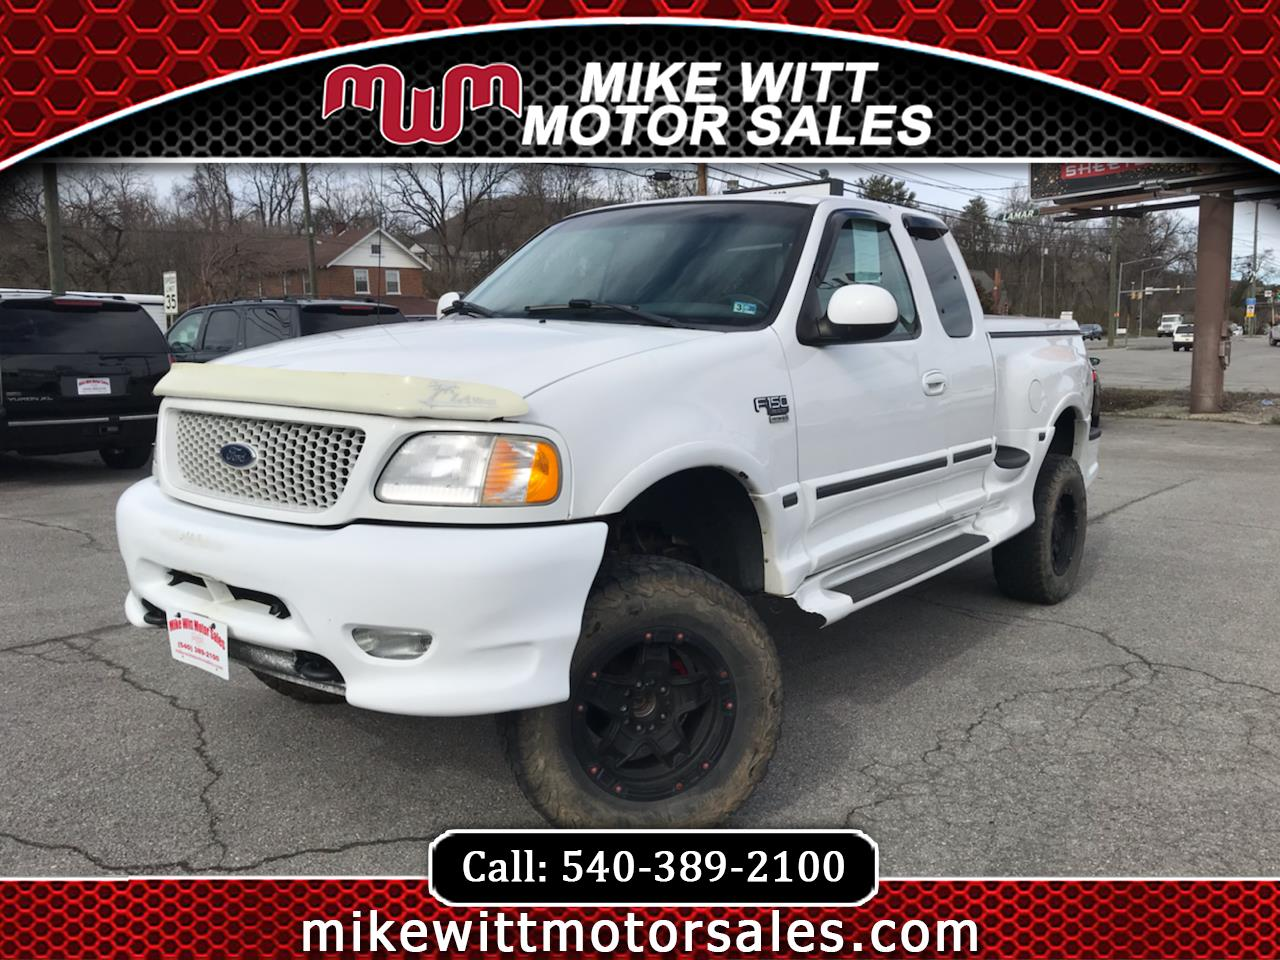 Ford F-150 Lariat SuperCab 6.5-ft. Bed 4WD 2000